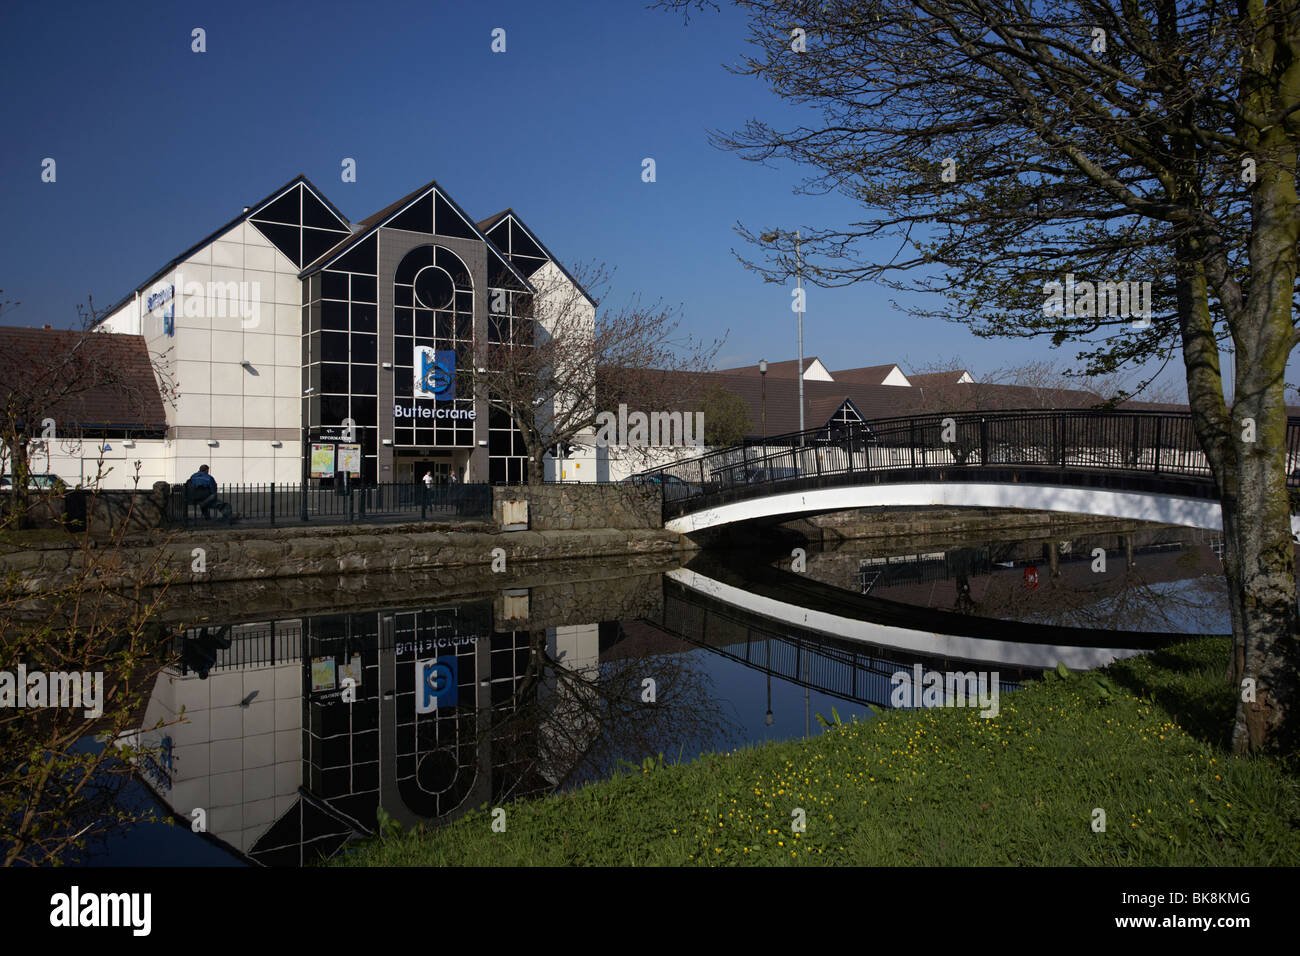 Buttercrane shopping centre and footbridge over the newry canal newry county down northern ireland - Stock Image